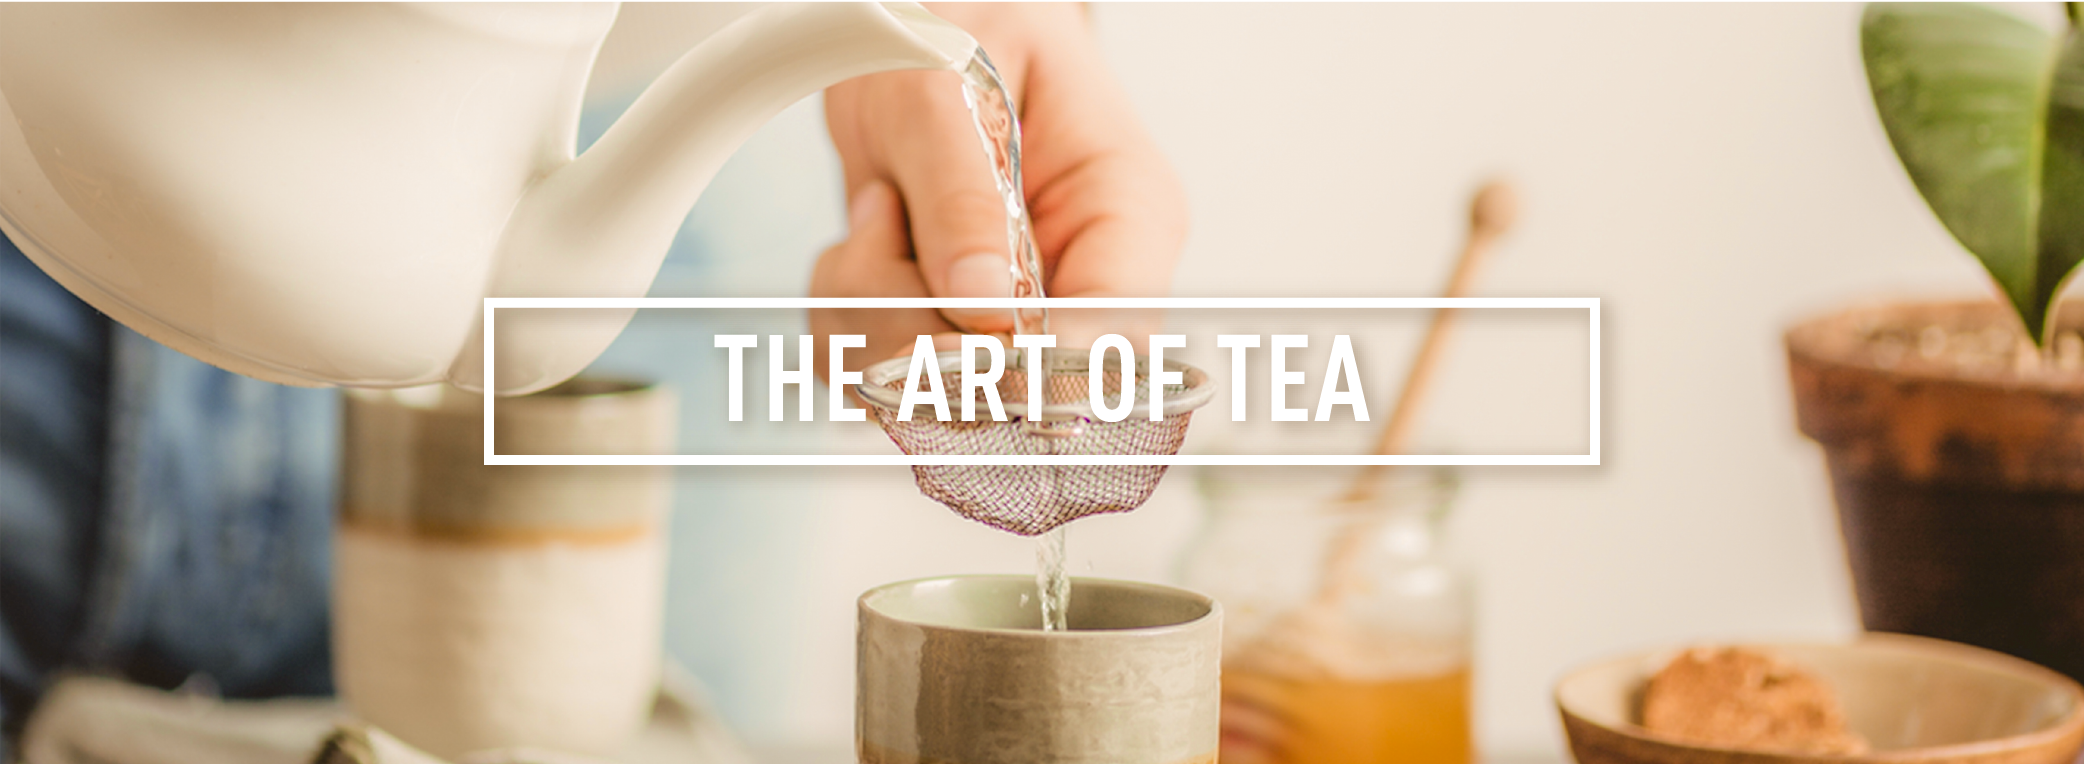 THE ART OF TEA_Webpage Header